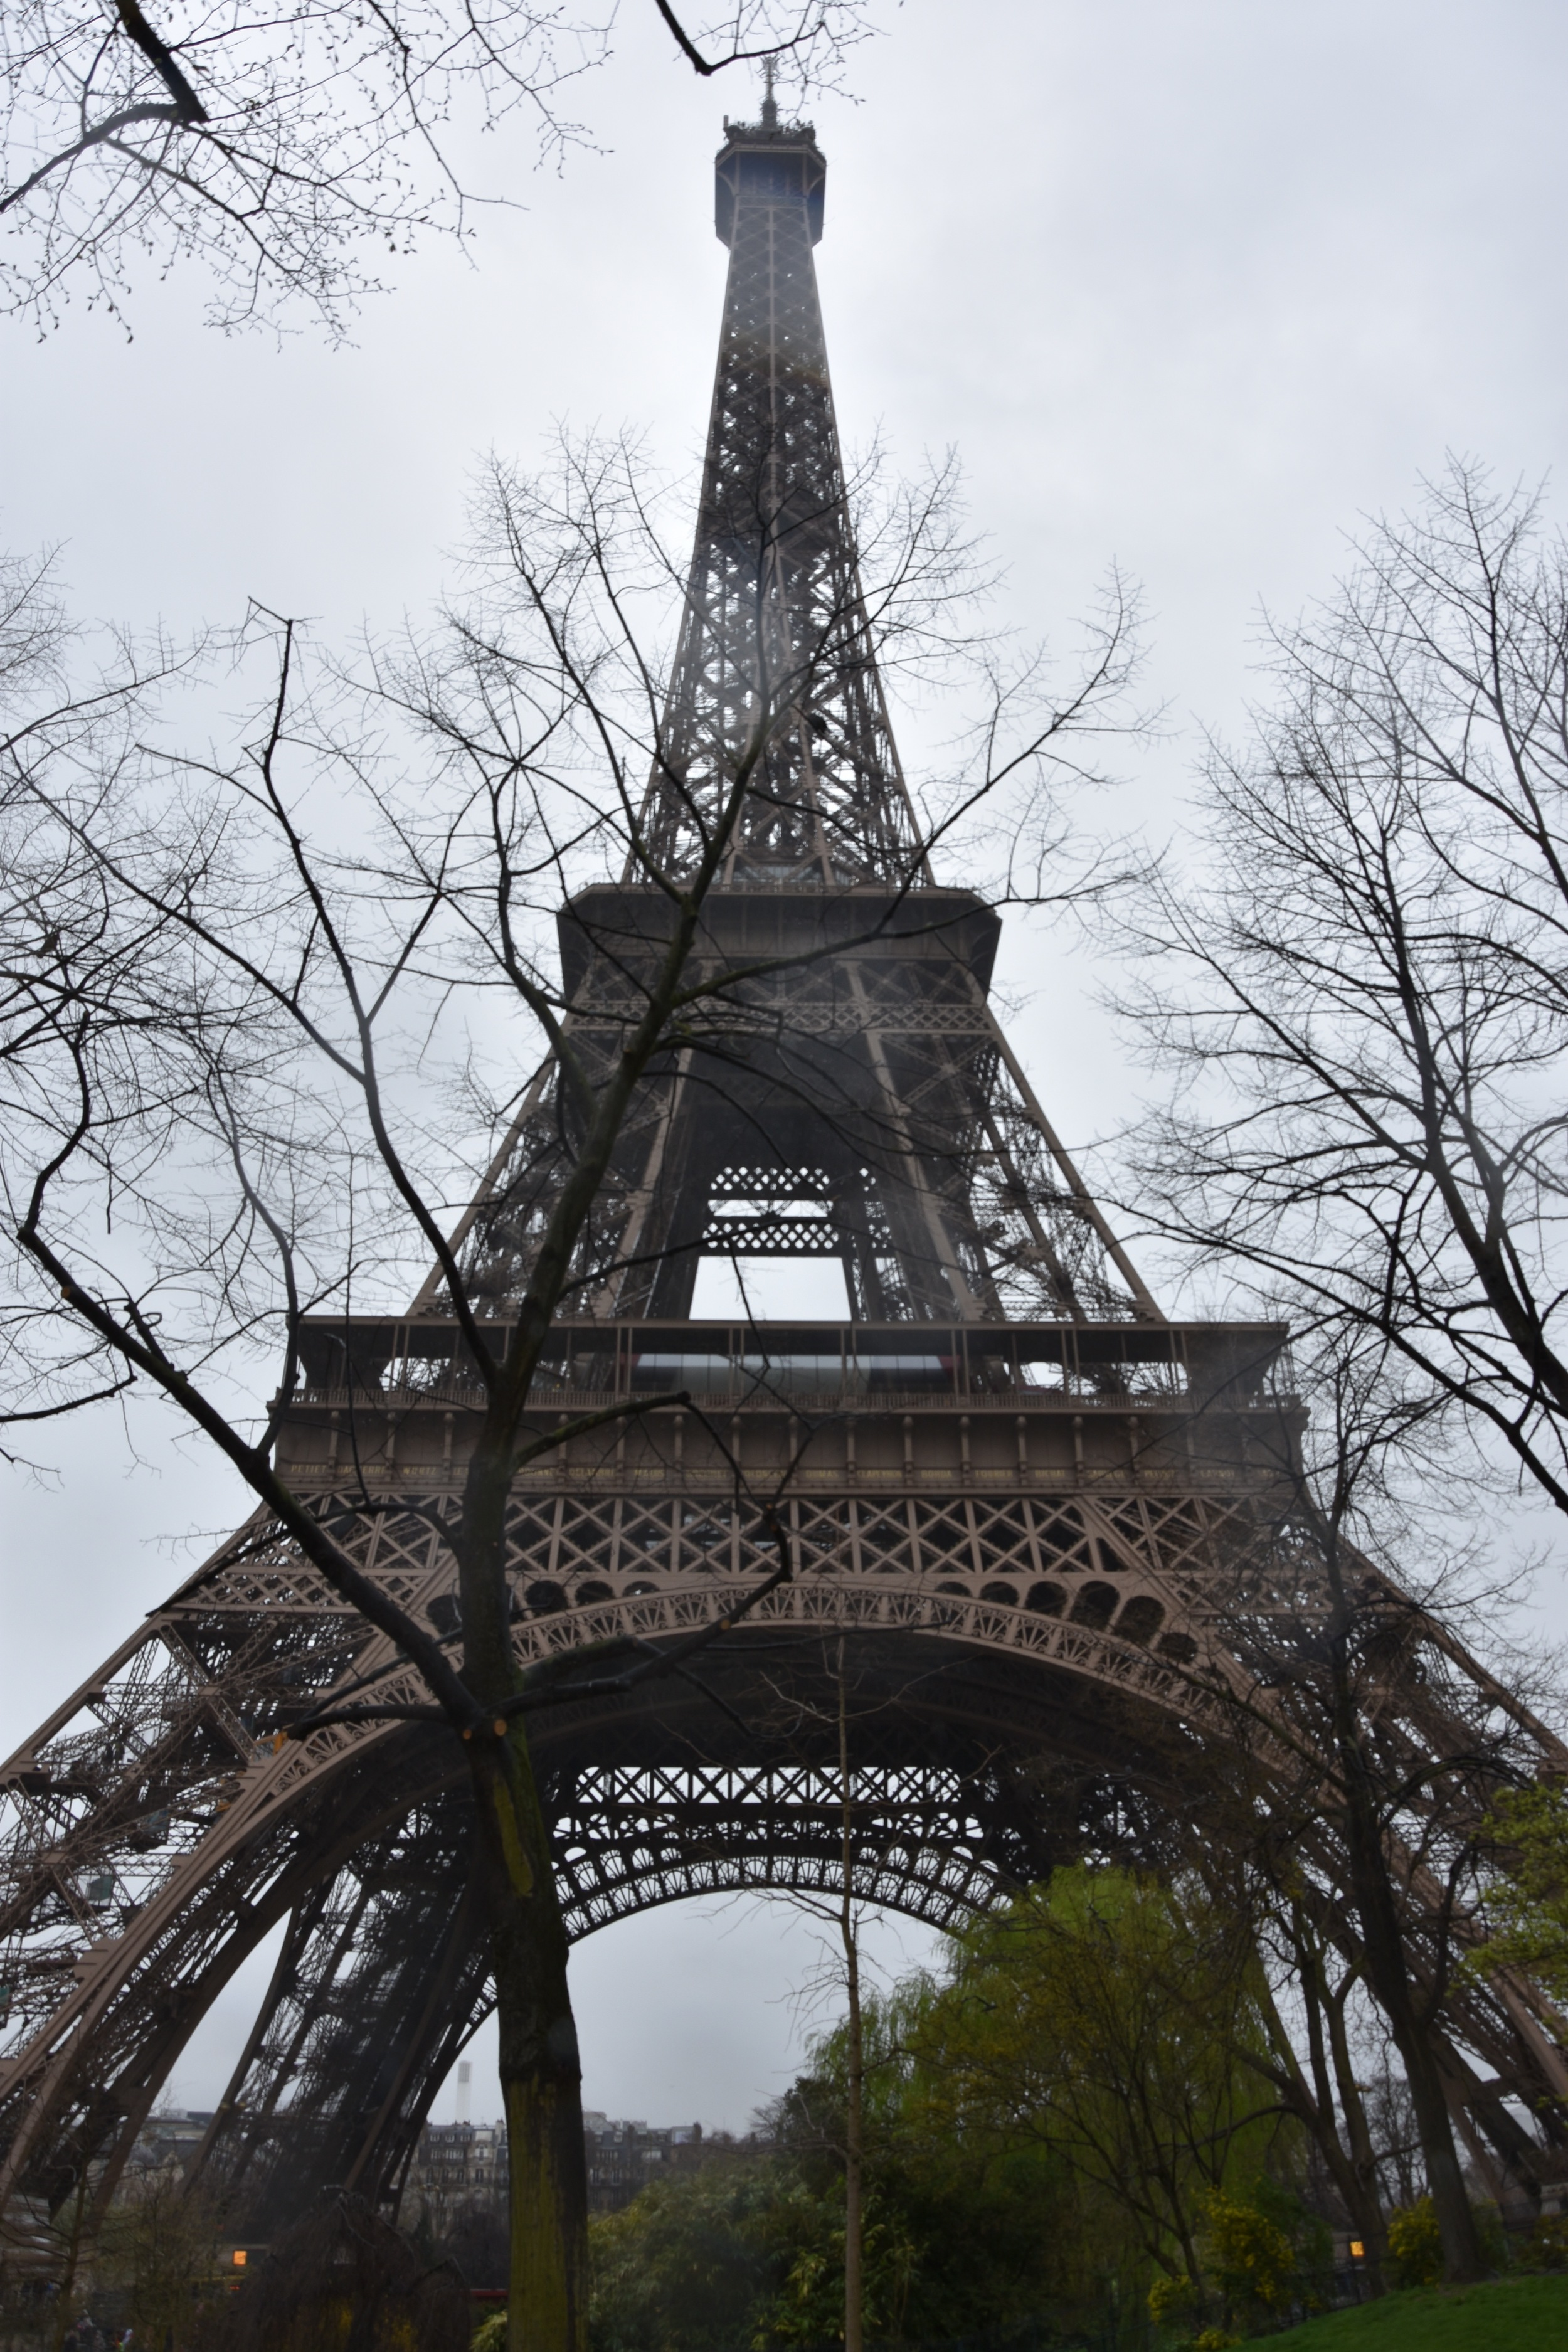 When I took this image of the Eiffel Tower it was pouring with rain and I was drenched after walking in it forfour hours. The power of my camera makes the representation much better than the reality!